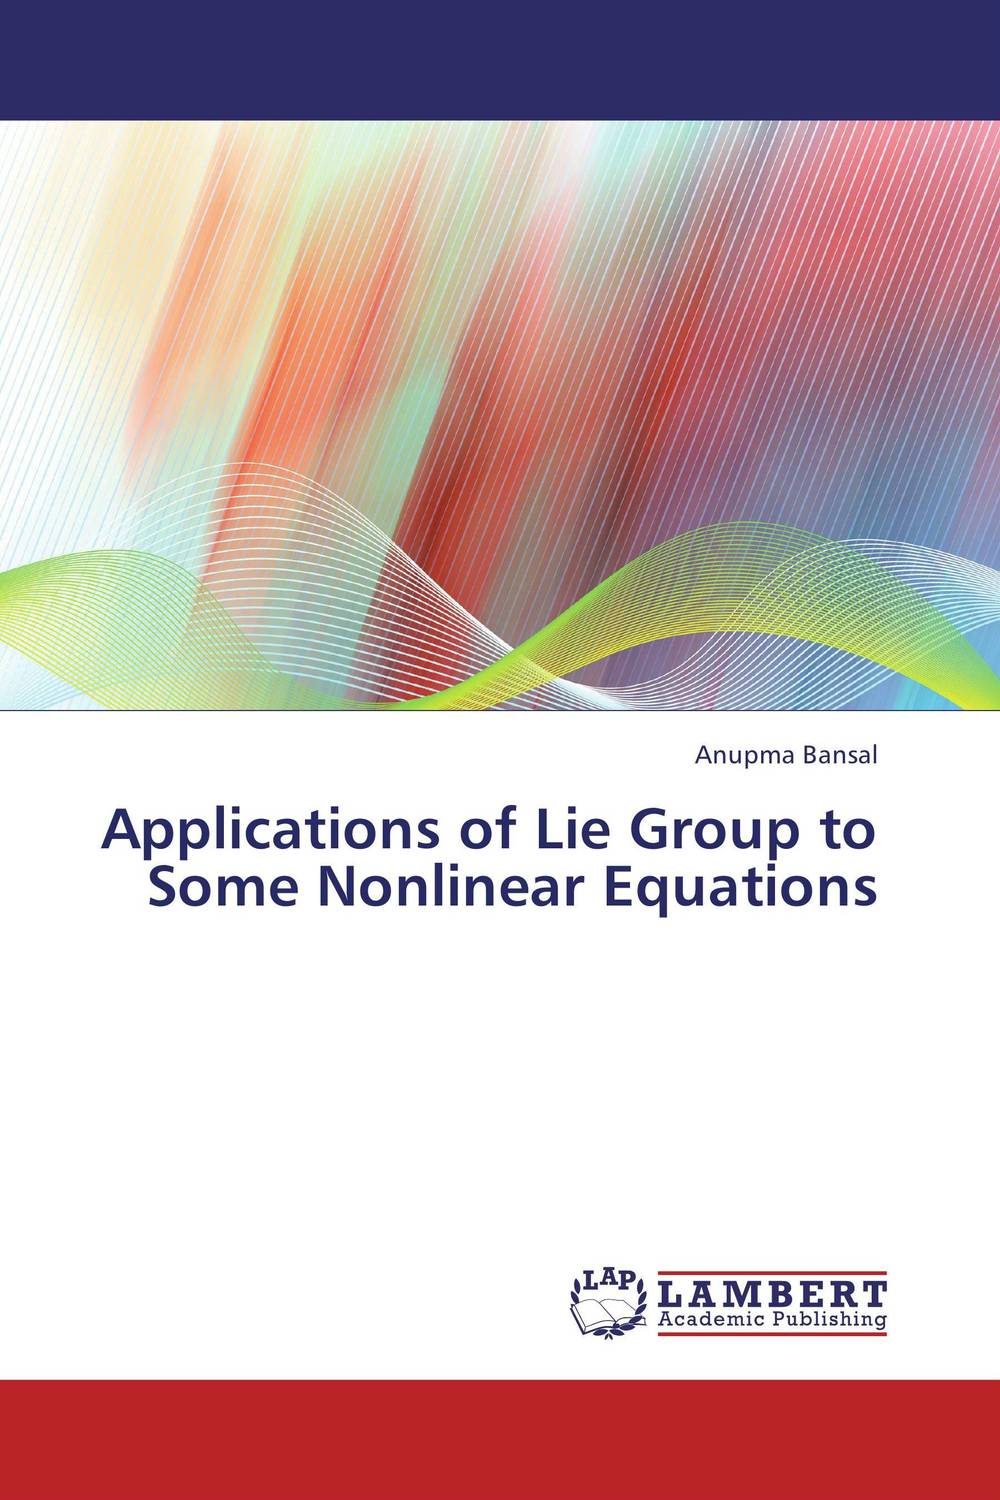 Applications of Lie Group to Some Nonlinear Equations symmetries and exact solutions for nonlinear systems